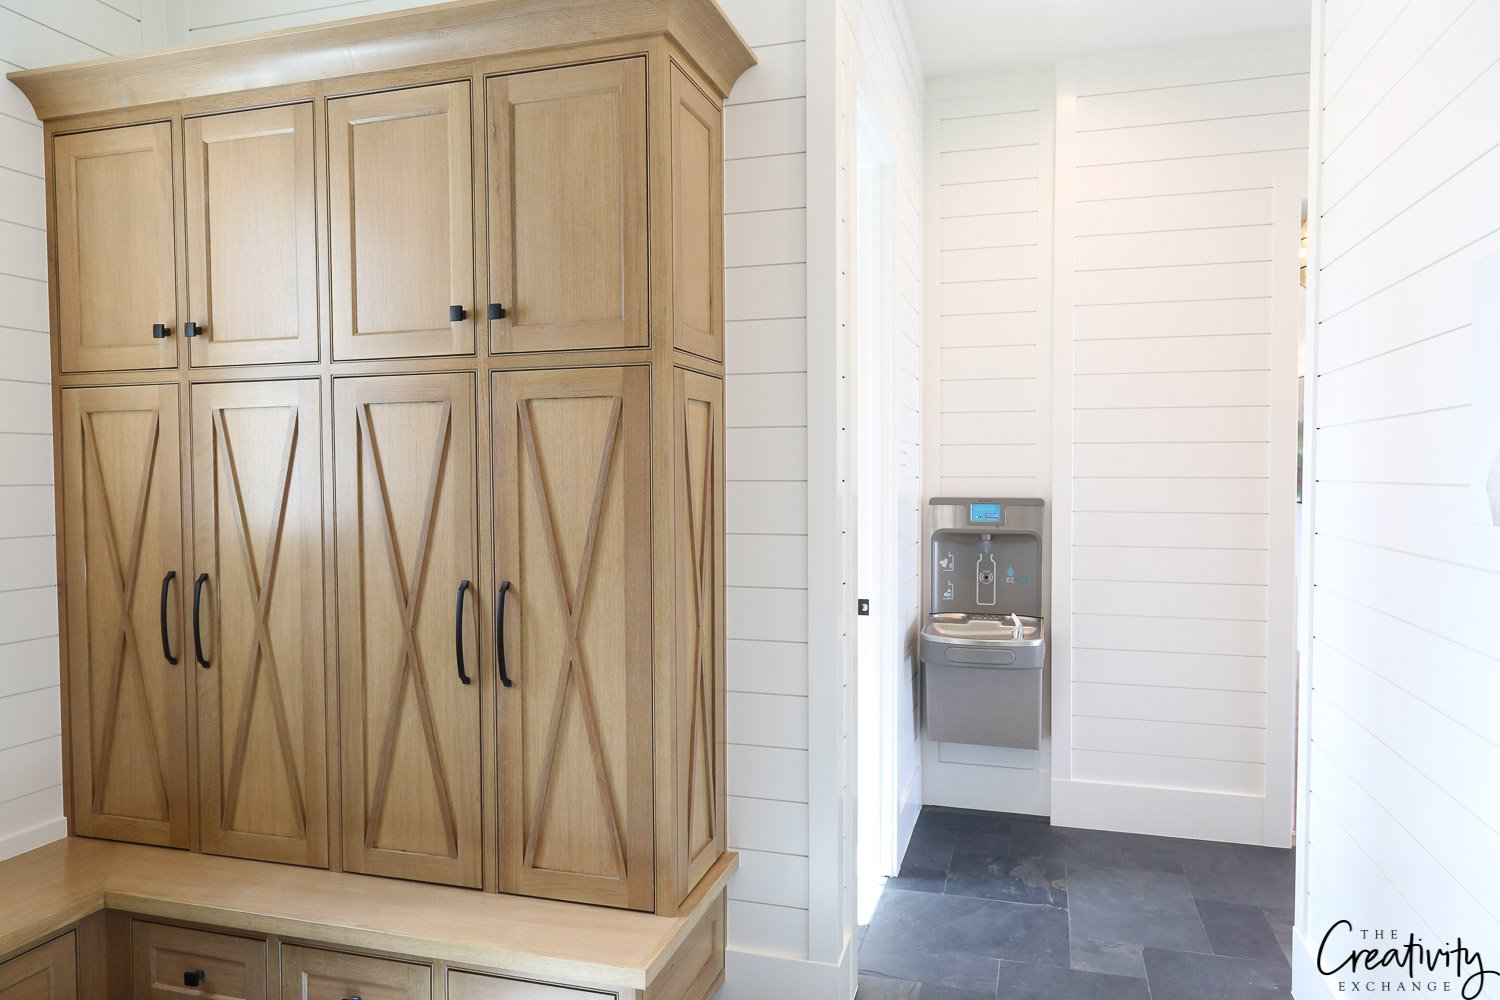 Mudroom with enclosed storage cabinets.